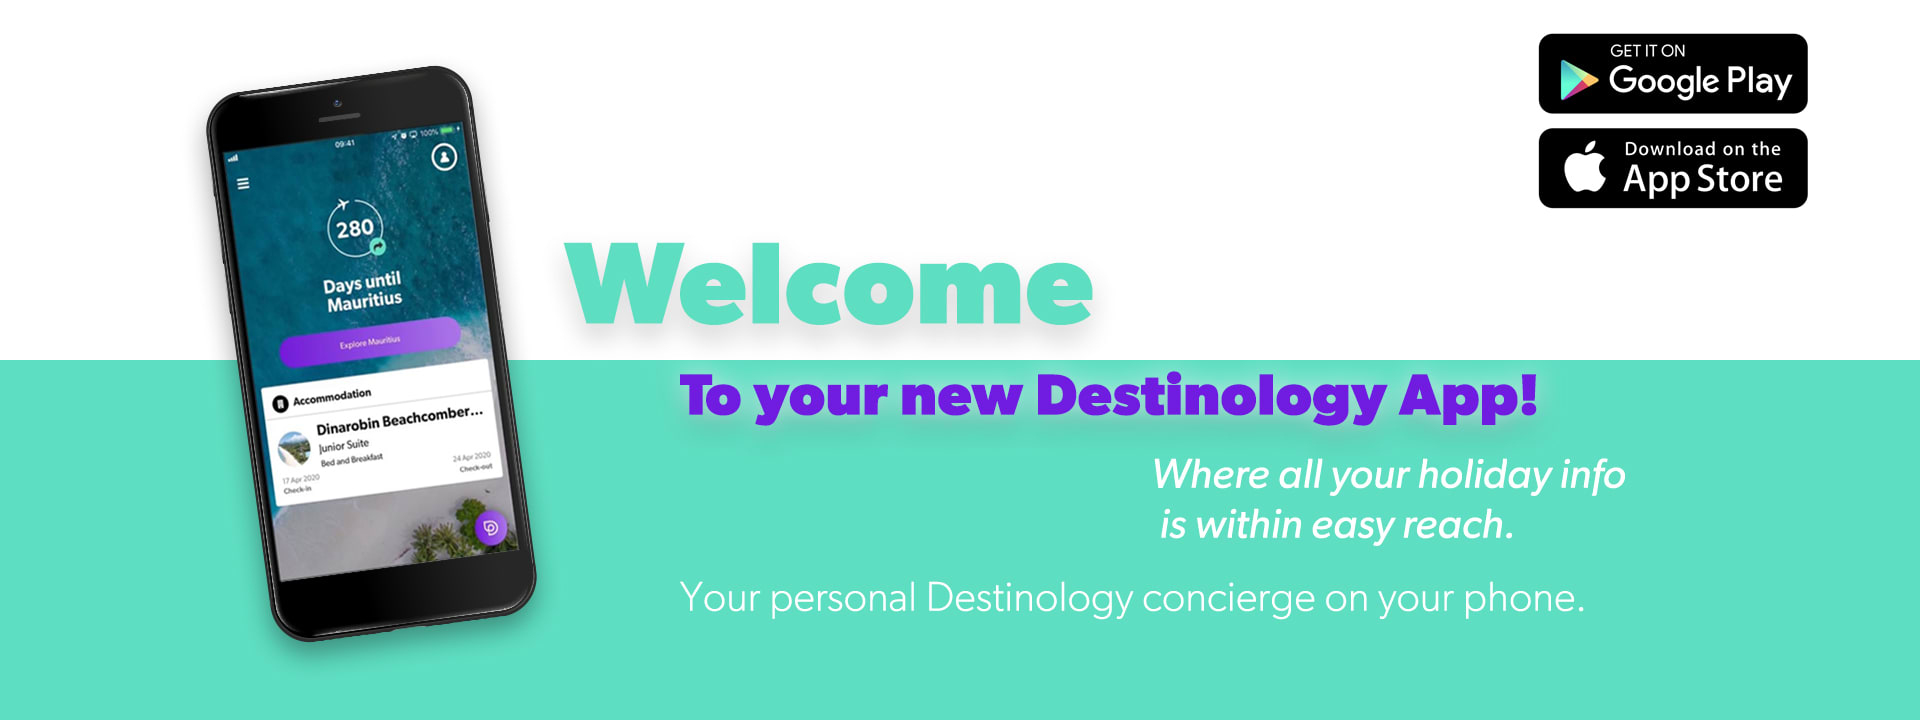 Welcome to the Destinology App!